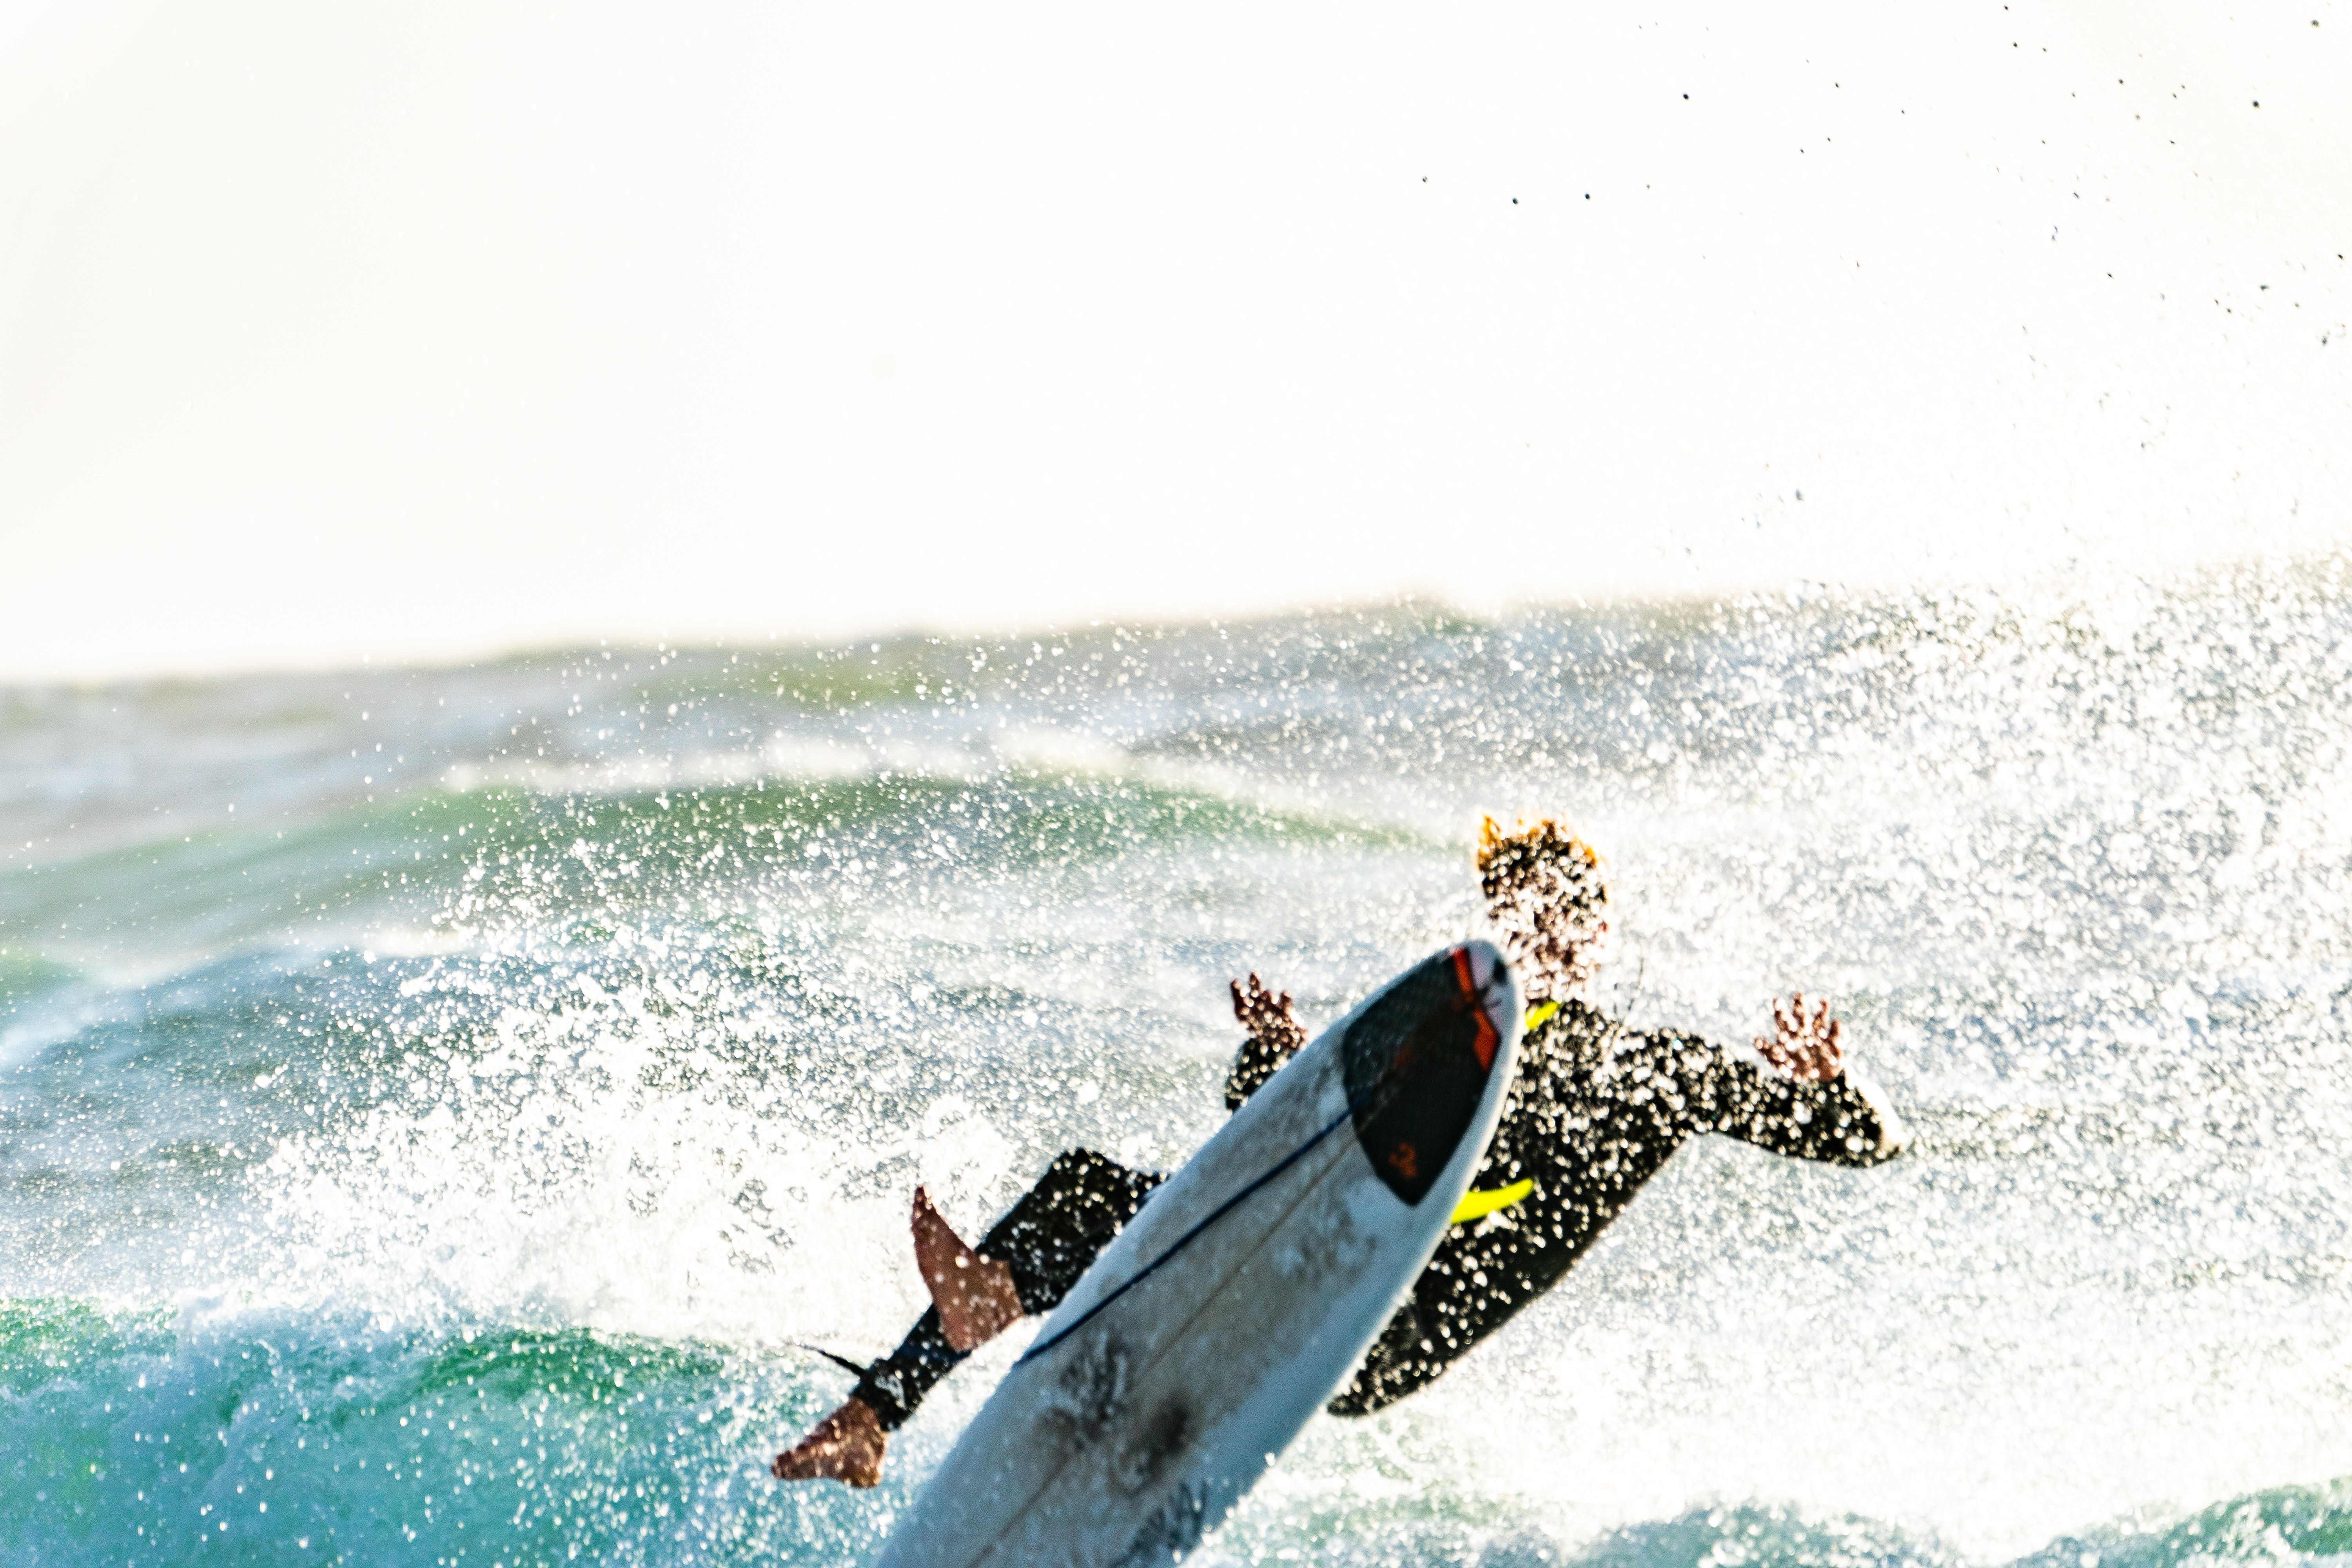 Surfer Wiping Out of his Surfboard